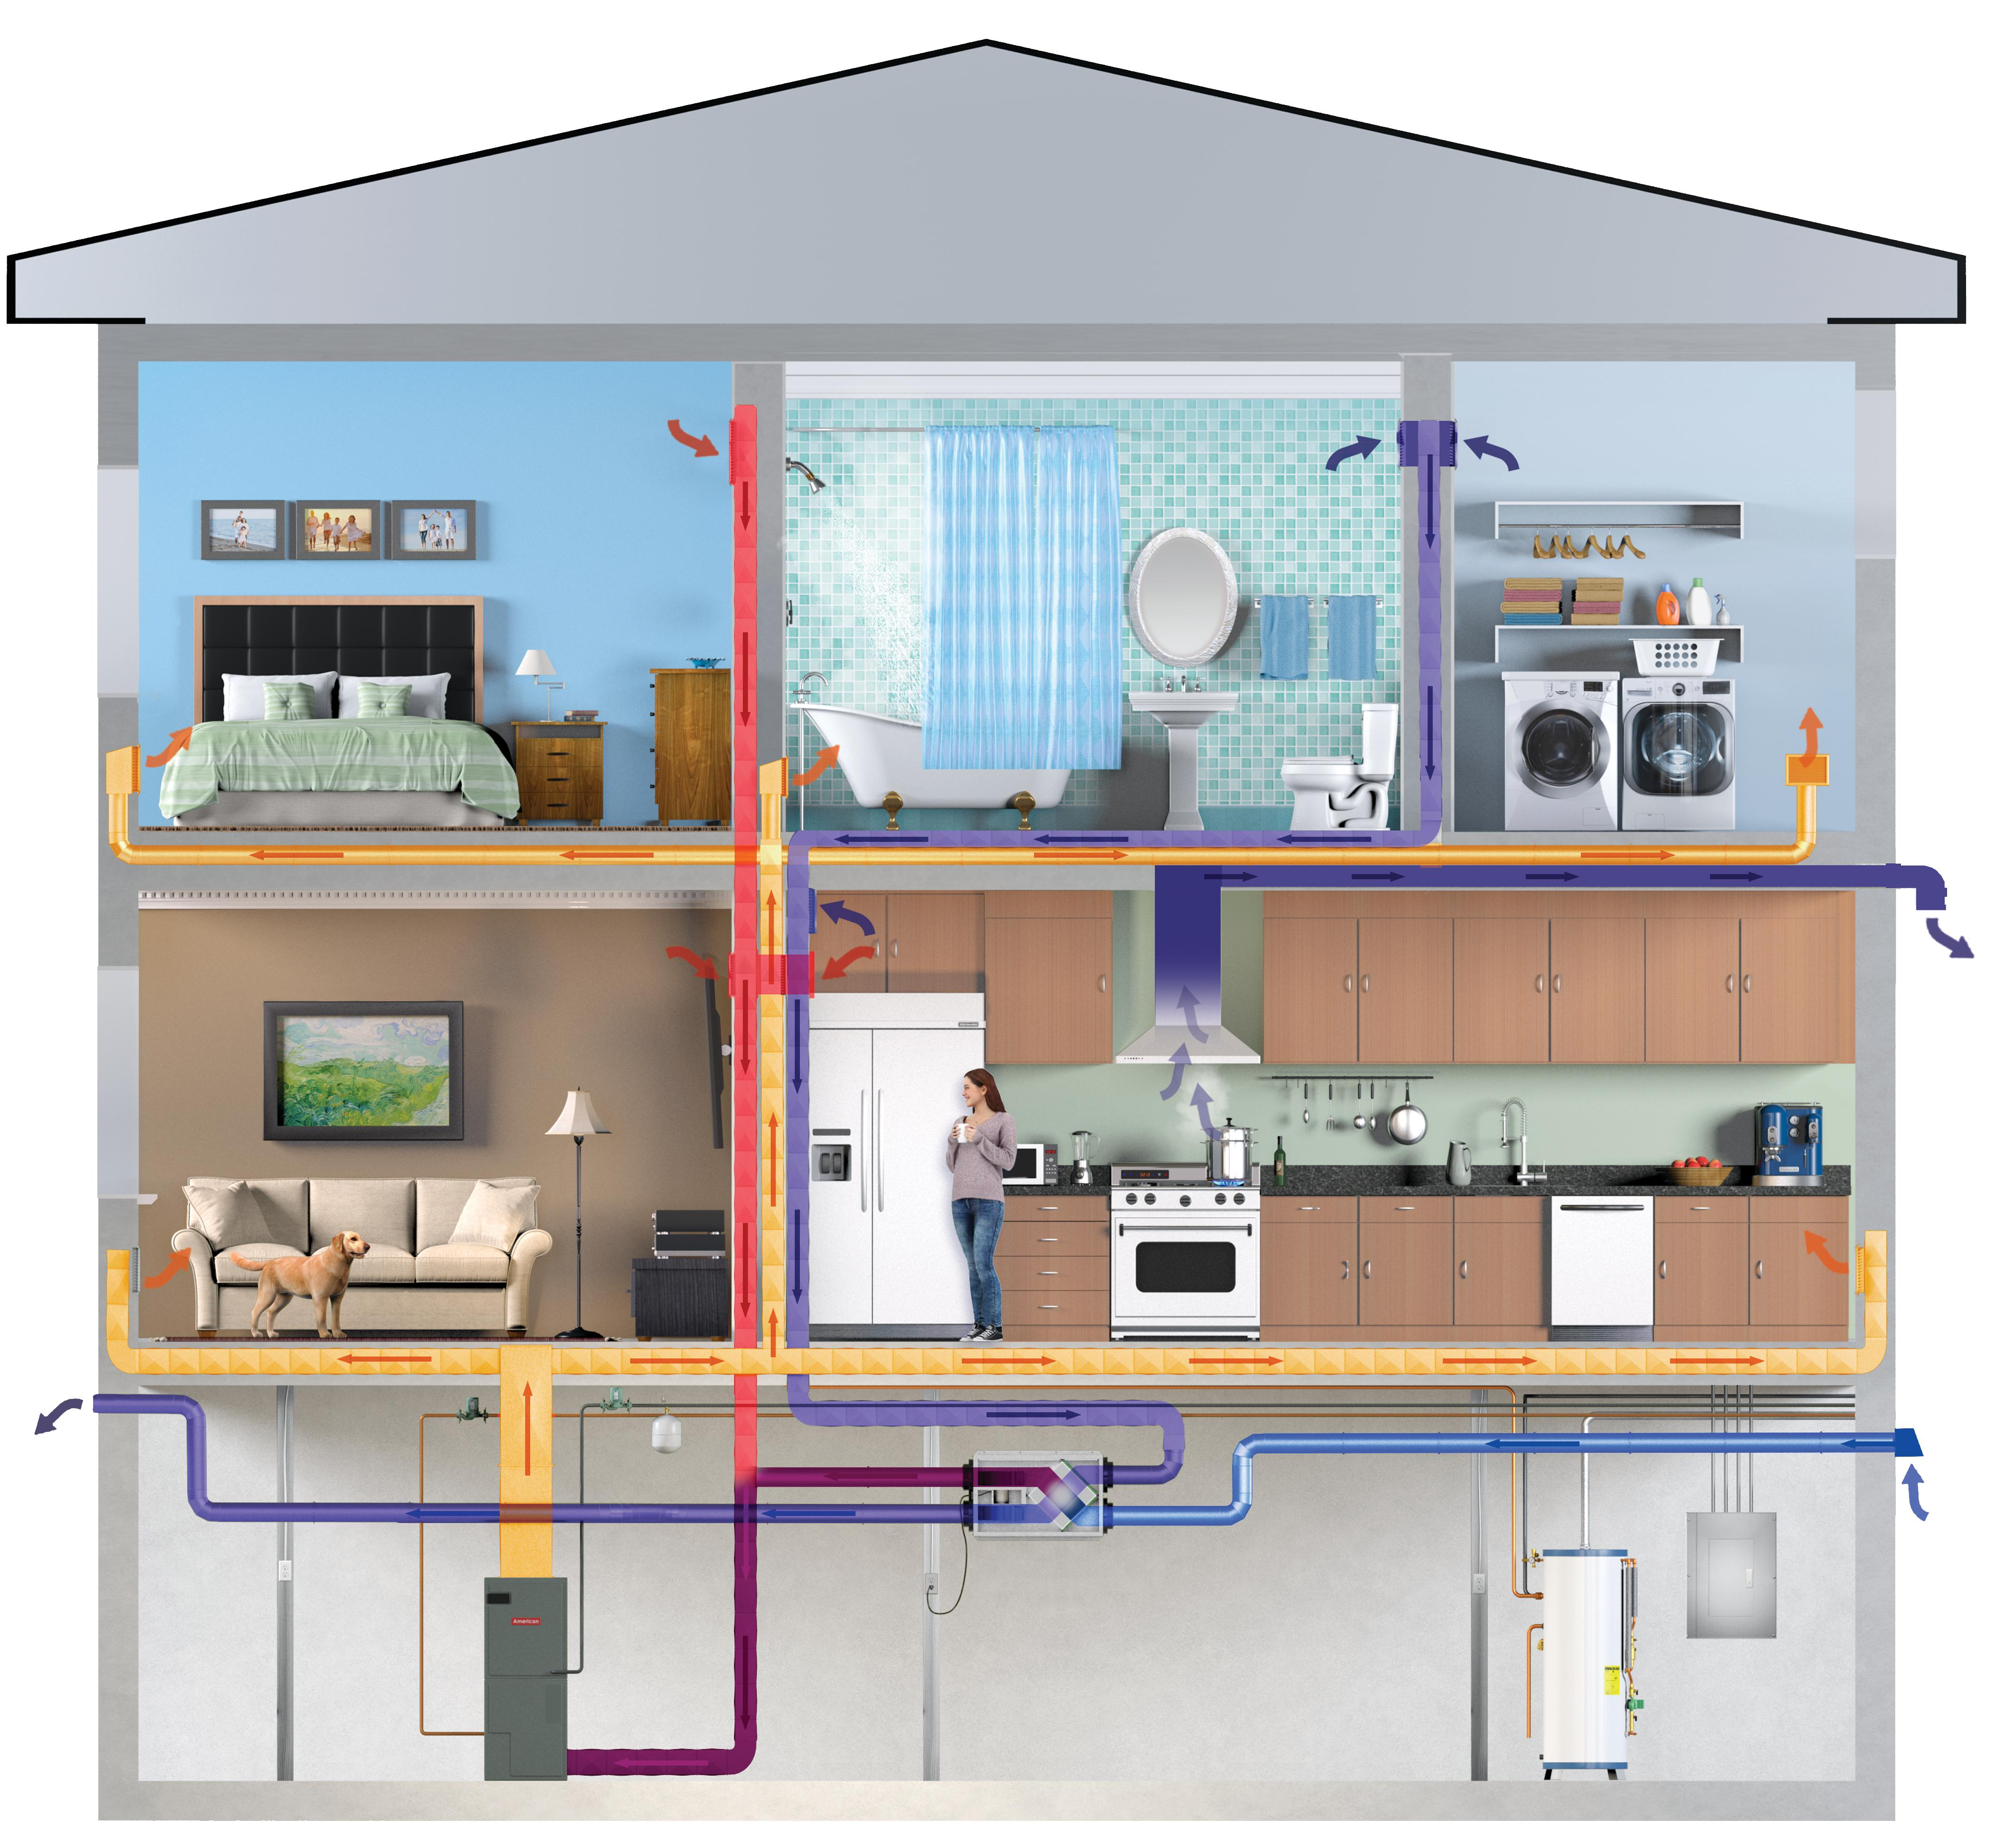 The superior choice for the most energy efficient ventilation is an Energy Recovery Ventilator (ERV). ERVs use a balanced approach to exhaust and supply air, achieving good indoor air quality while saving energy. Image: RenewAire.